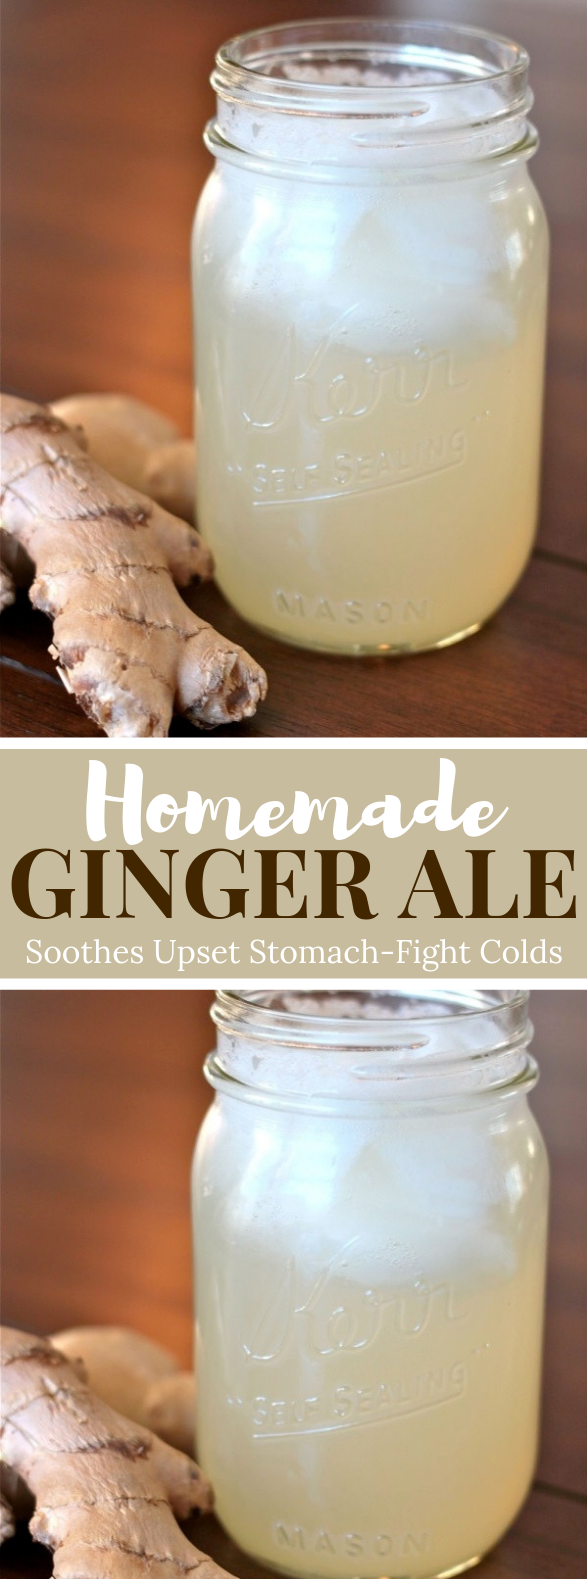 Homemade Ginger Ale #healthydrink #herbal